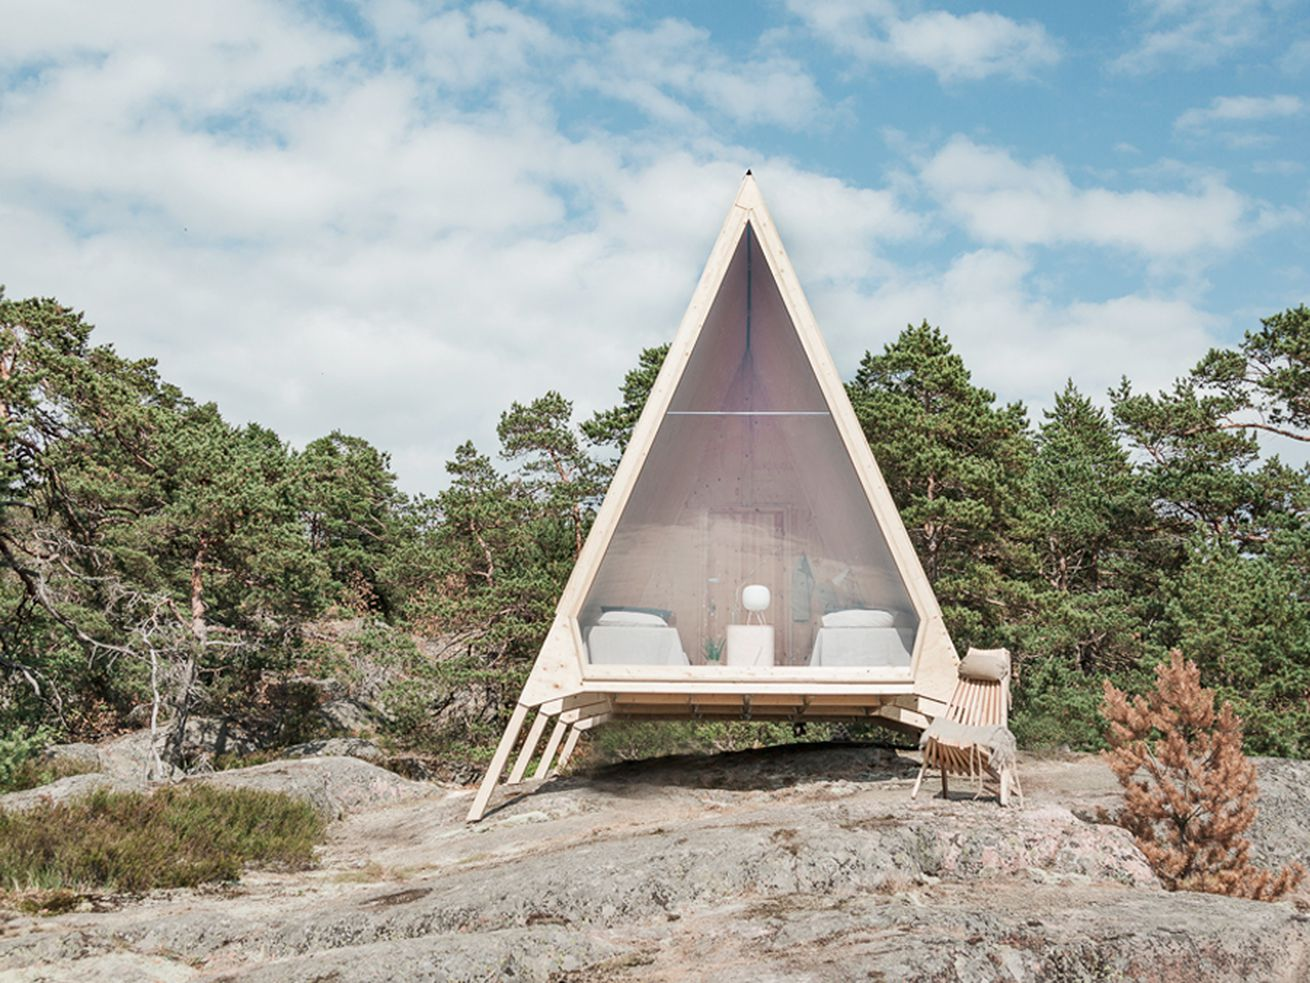 Solar-powered tiny cabin offers eco-friendly nature retreat